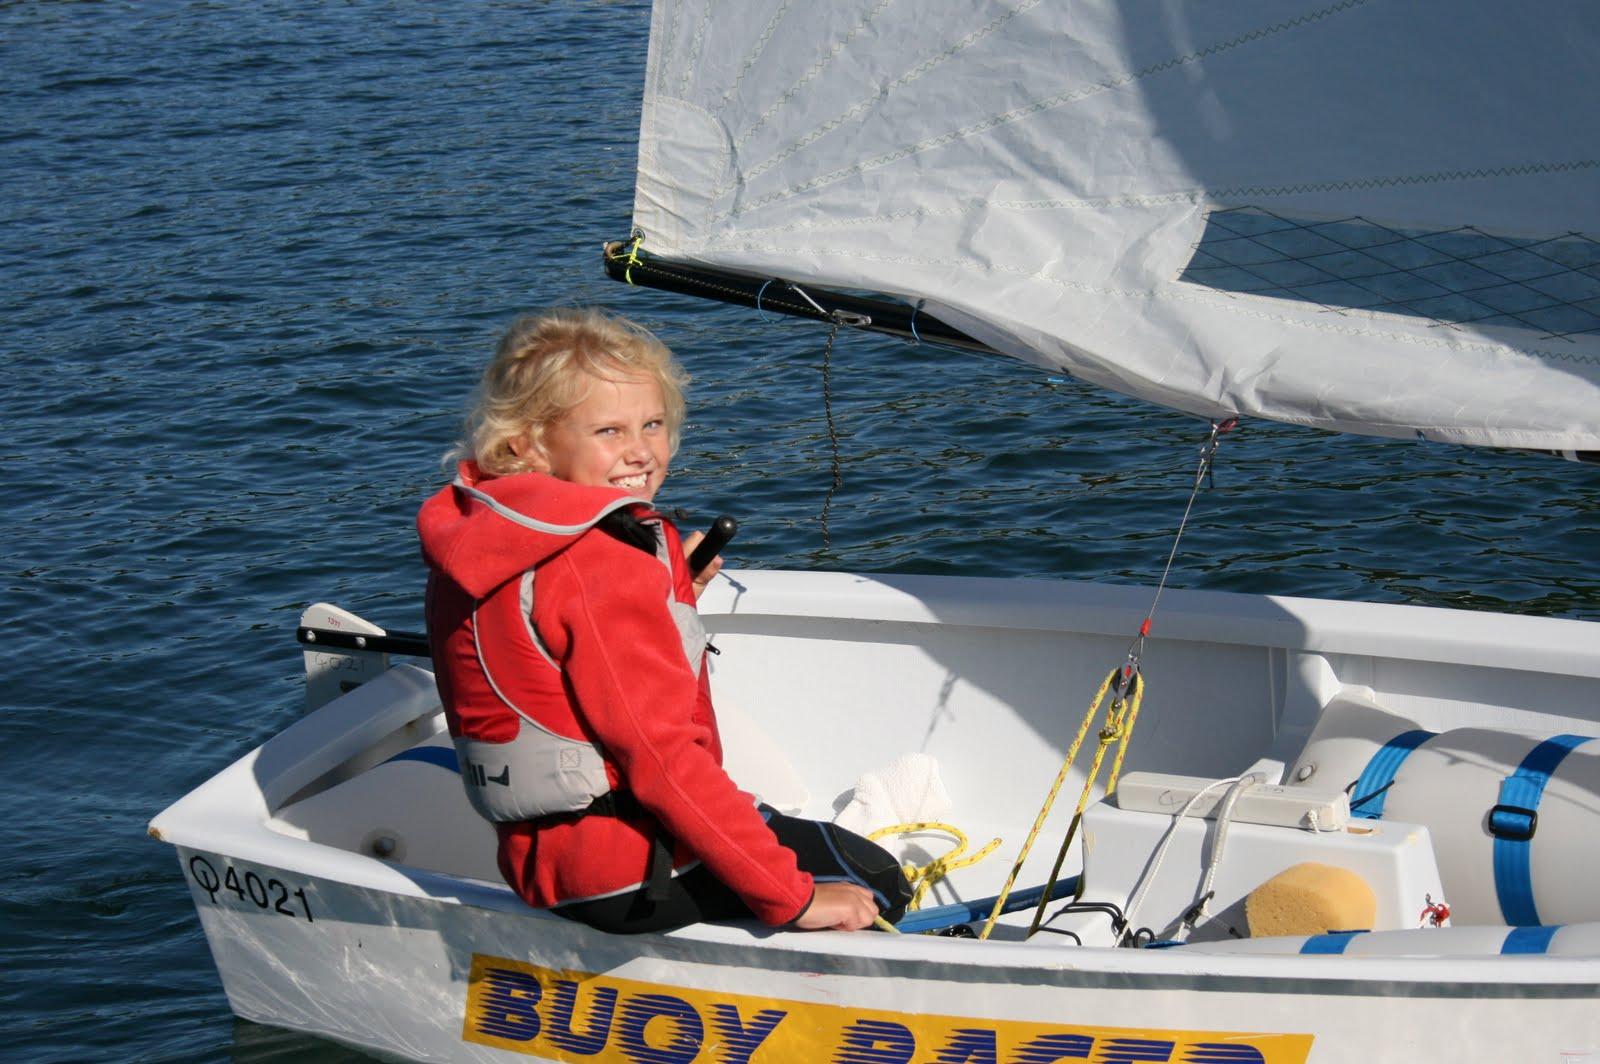 Is It A Good Idea For Children To Learn To Sail?